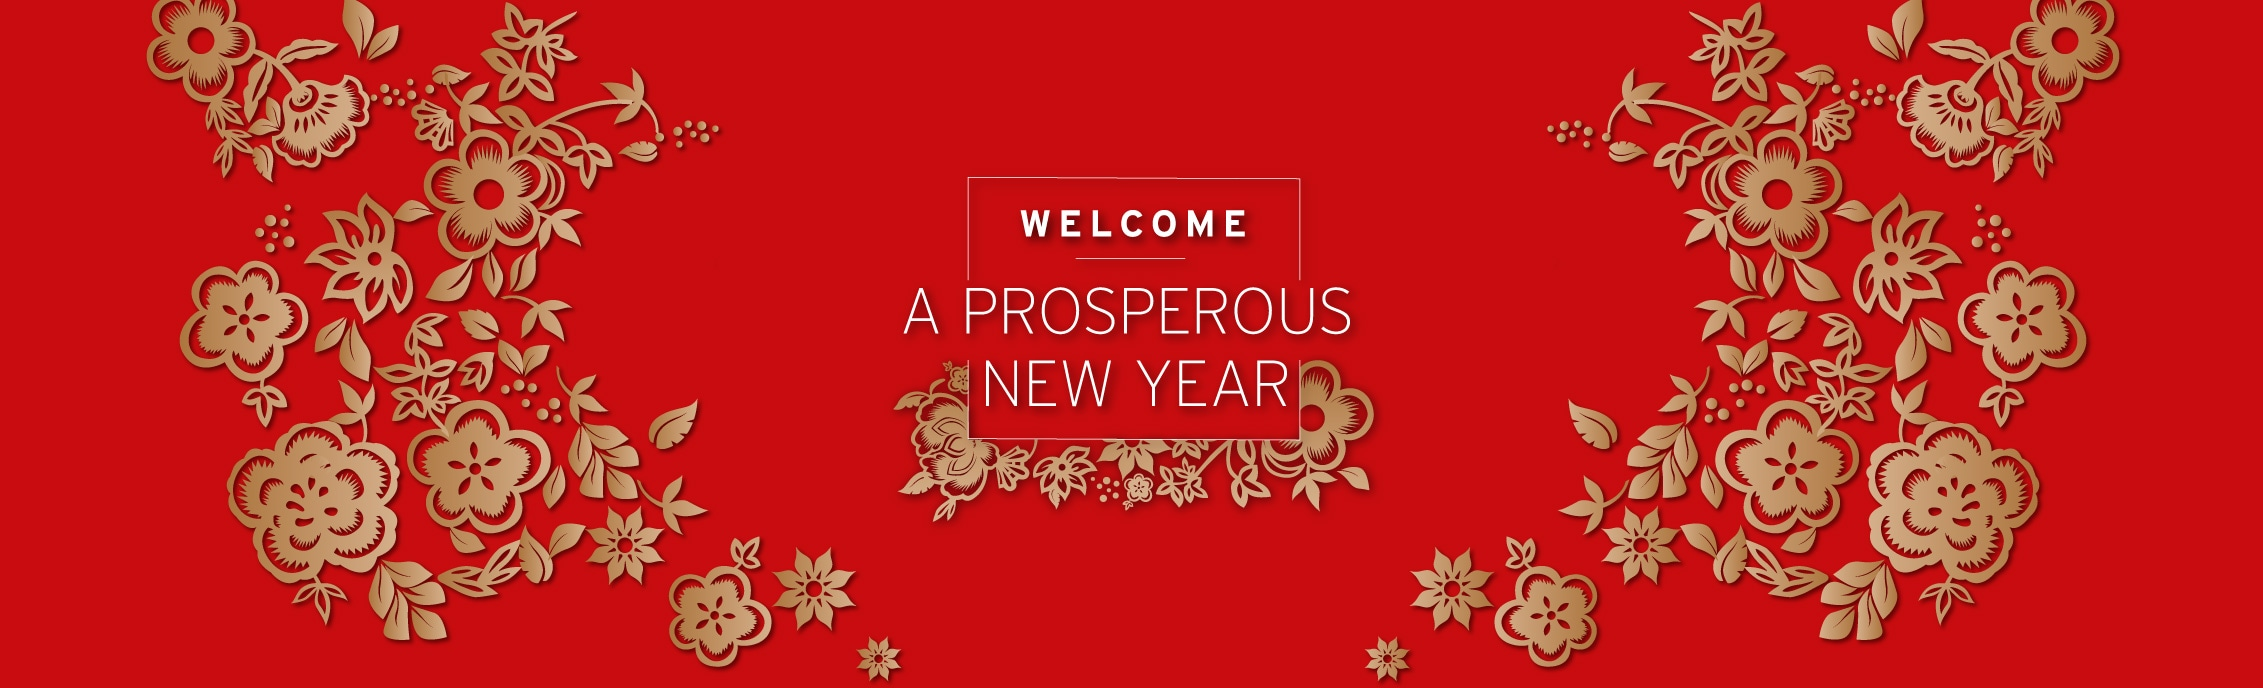 WELCOME A PROSPEROUS NEW YEAR